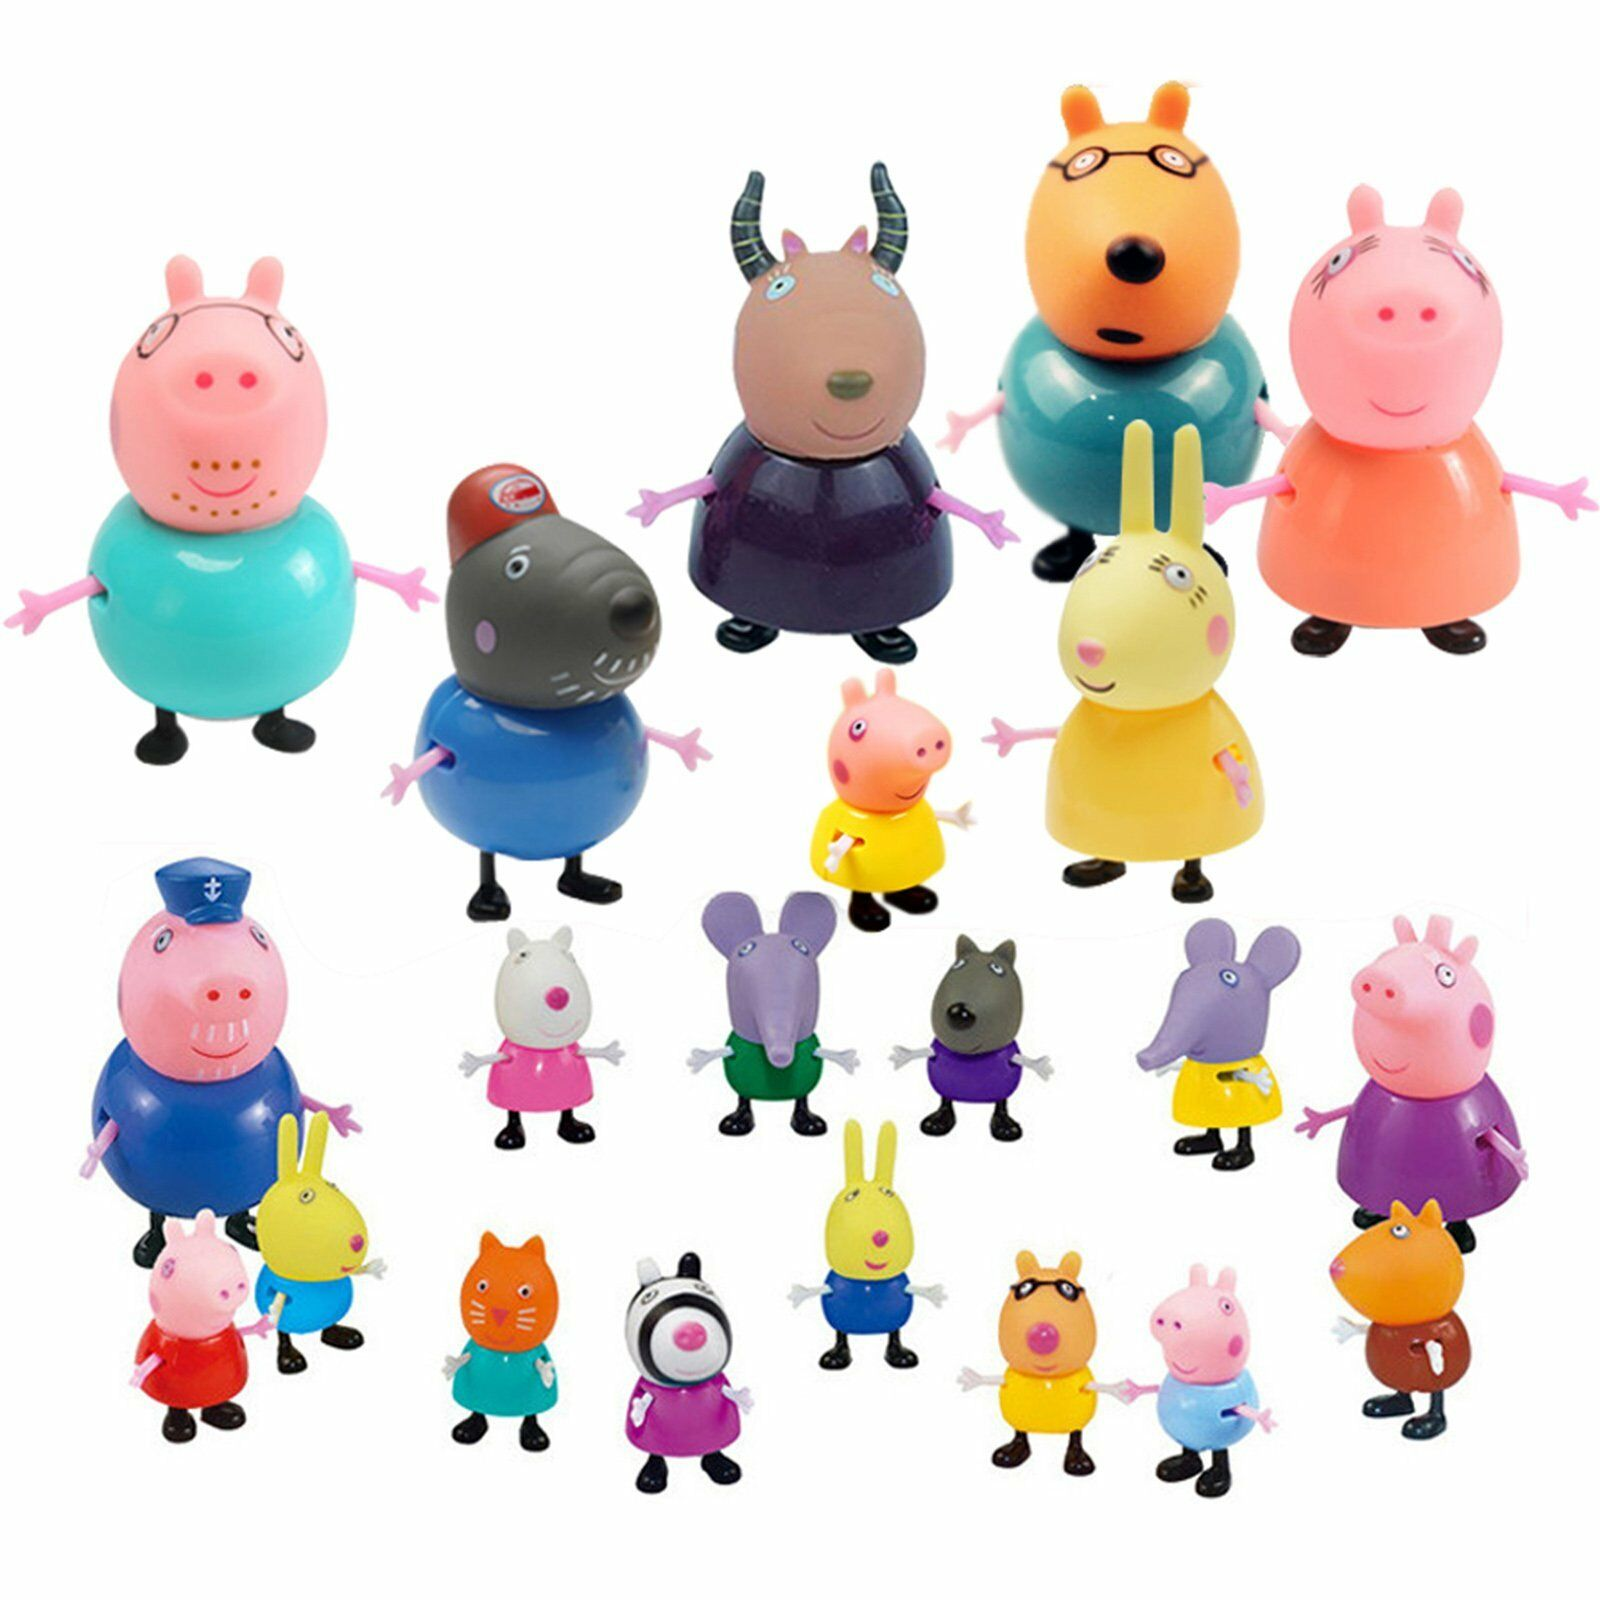 Best Peppa Pig Toys : Kids gift pcs peppa pig family friends emily rebecca